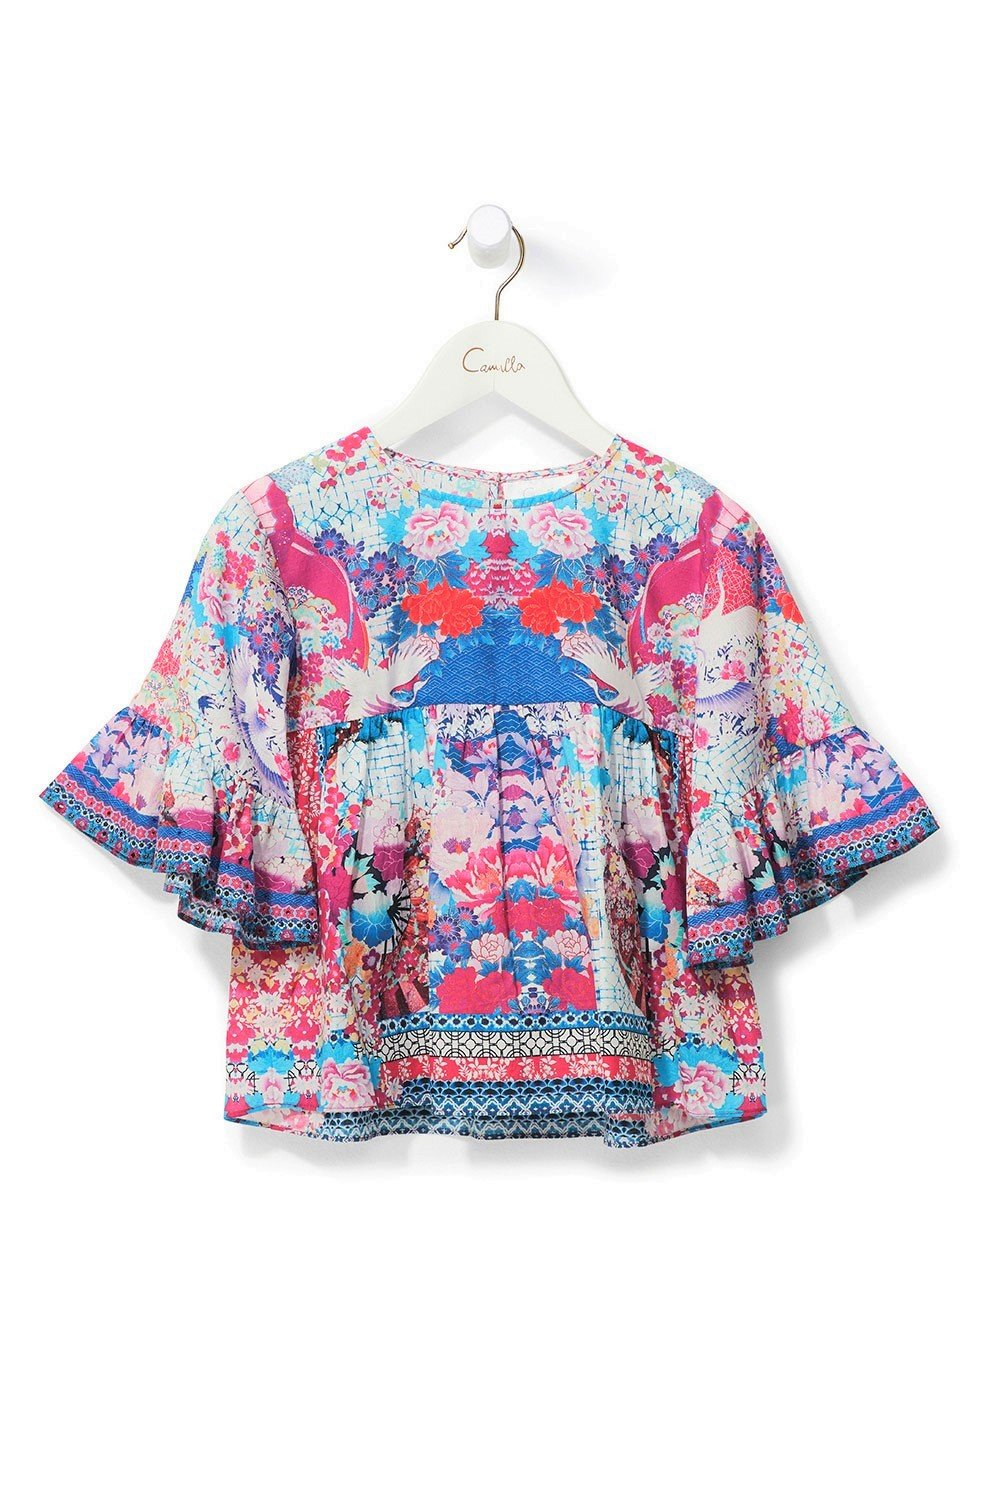 KID'S BELL SLEEVE TOP SKY OF VENUS